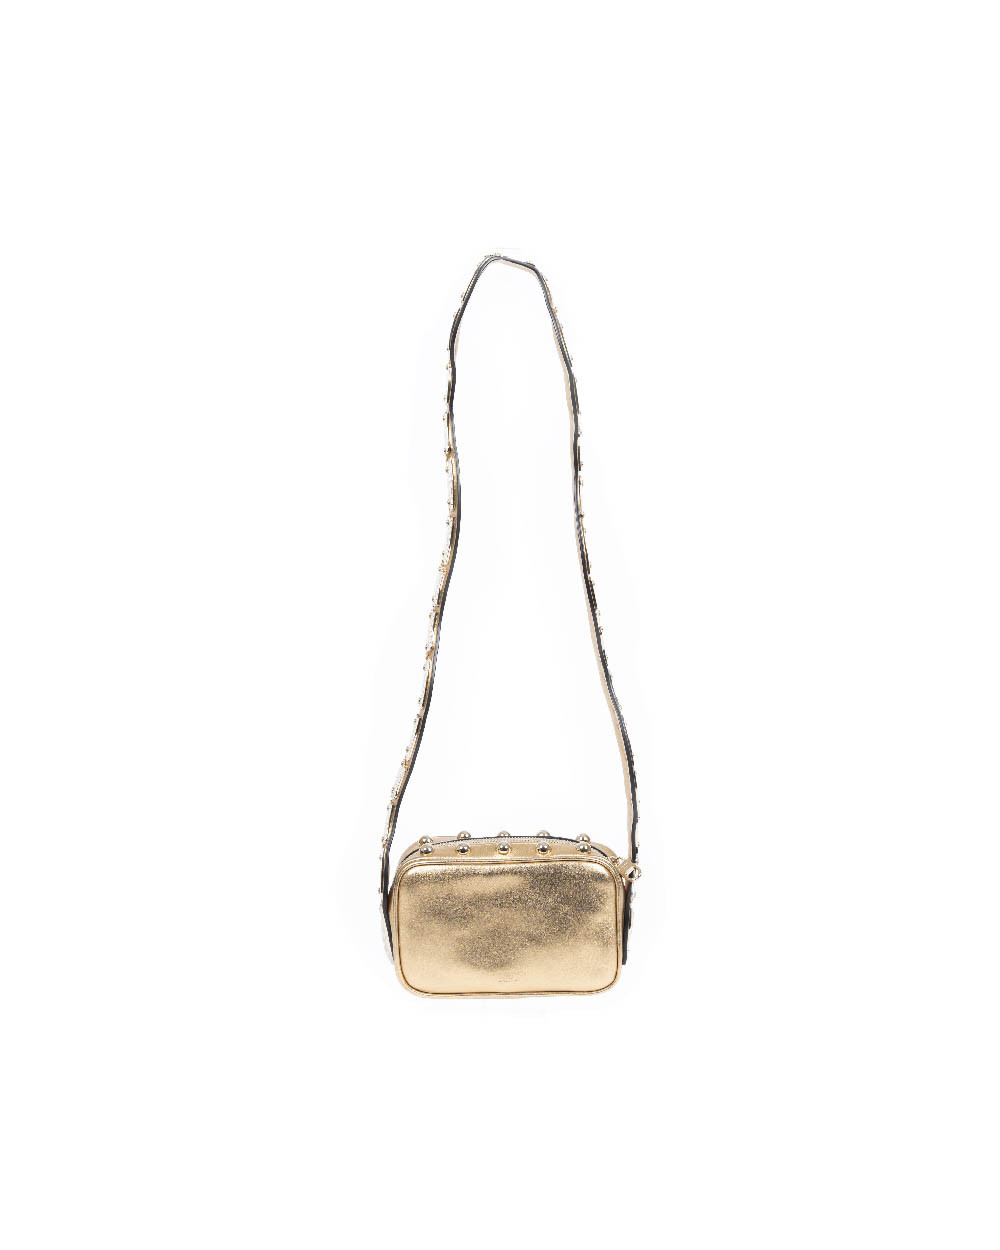 acheter populaire 4453e dacb5 Purse Red Valentino gold with shoulder strap like serpent for women